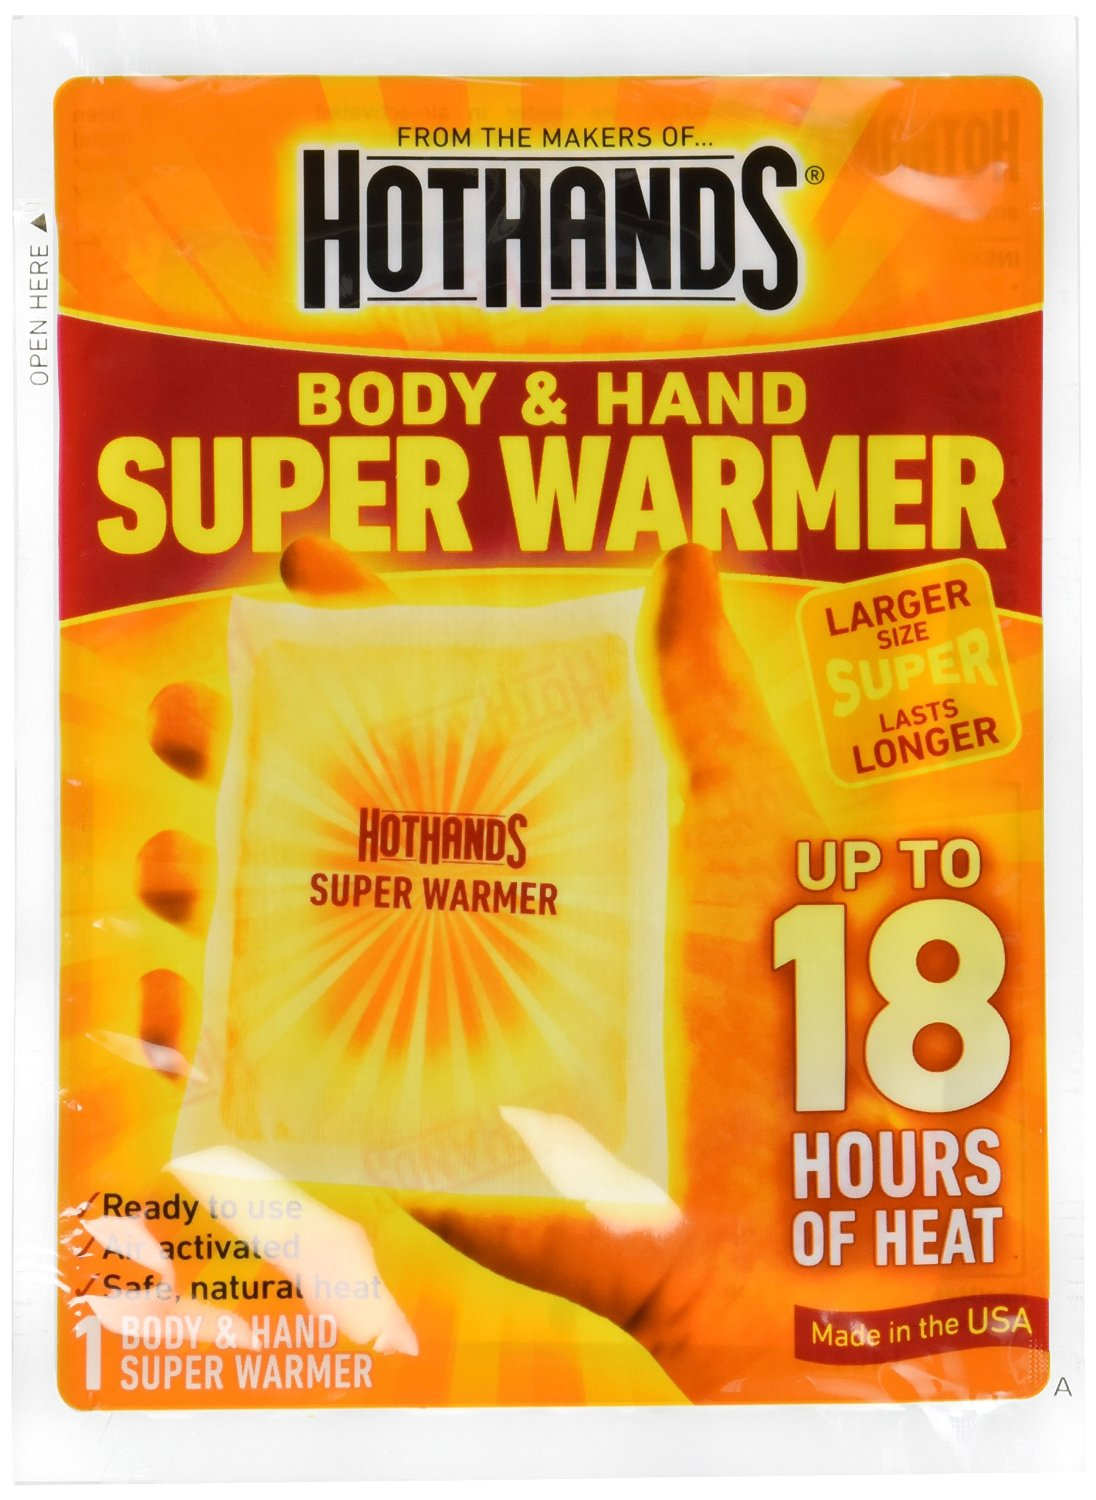 15 Pack HotHands Body & Hand Super Warmer 15 Pack by